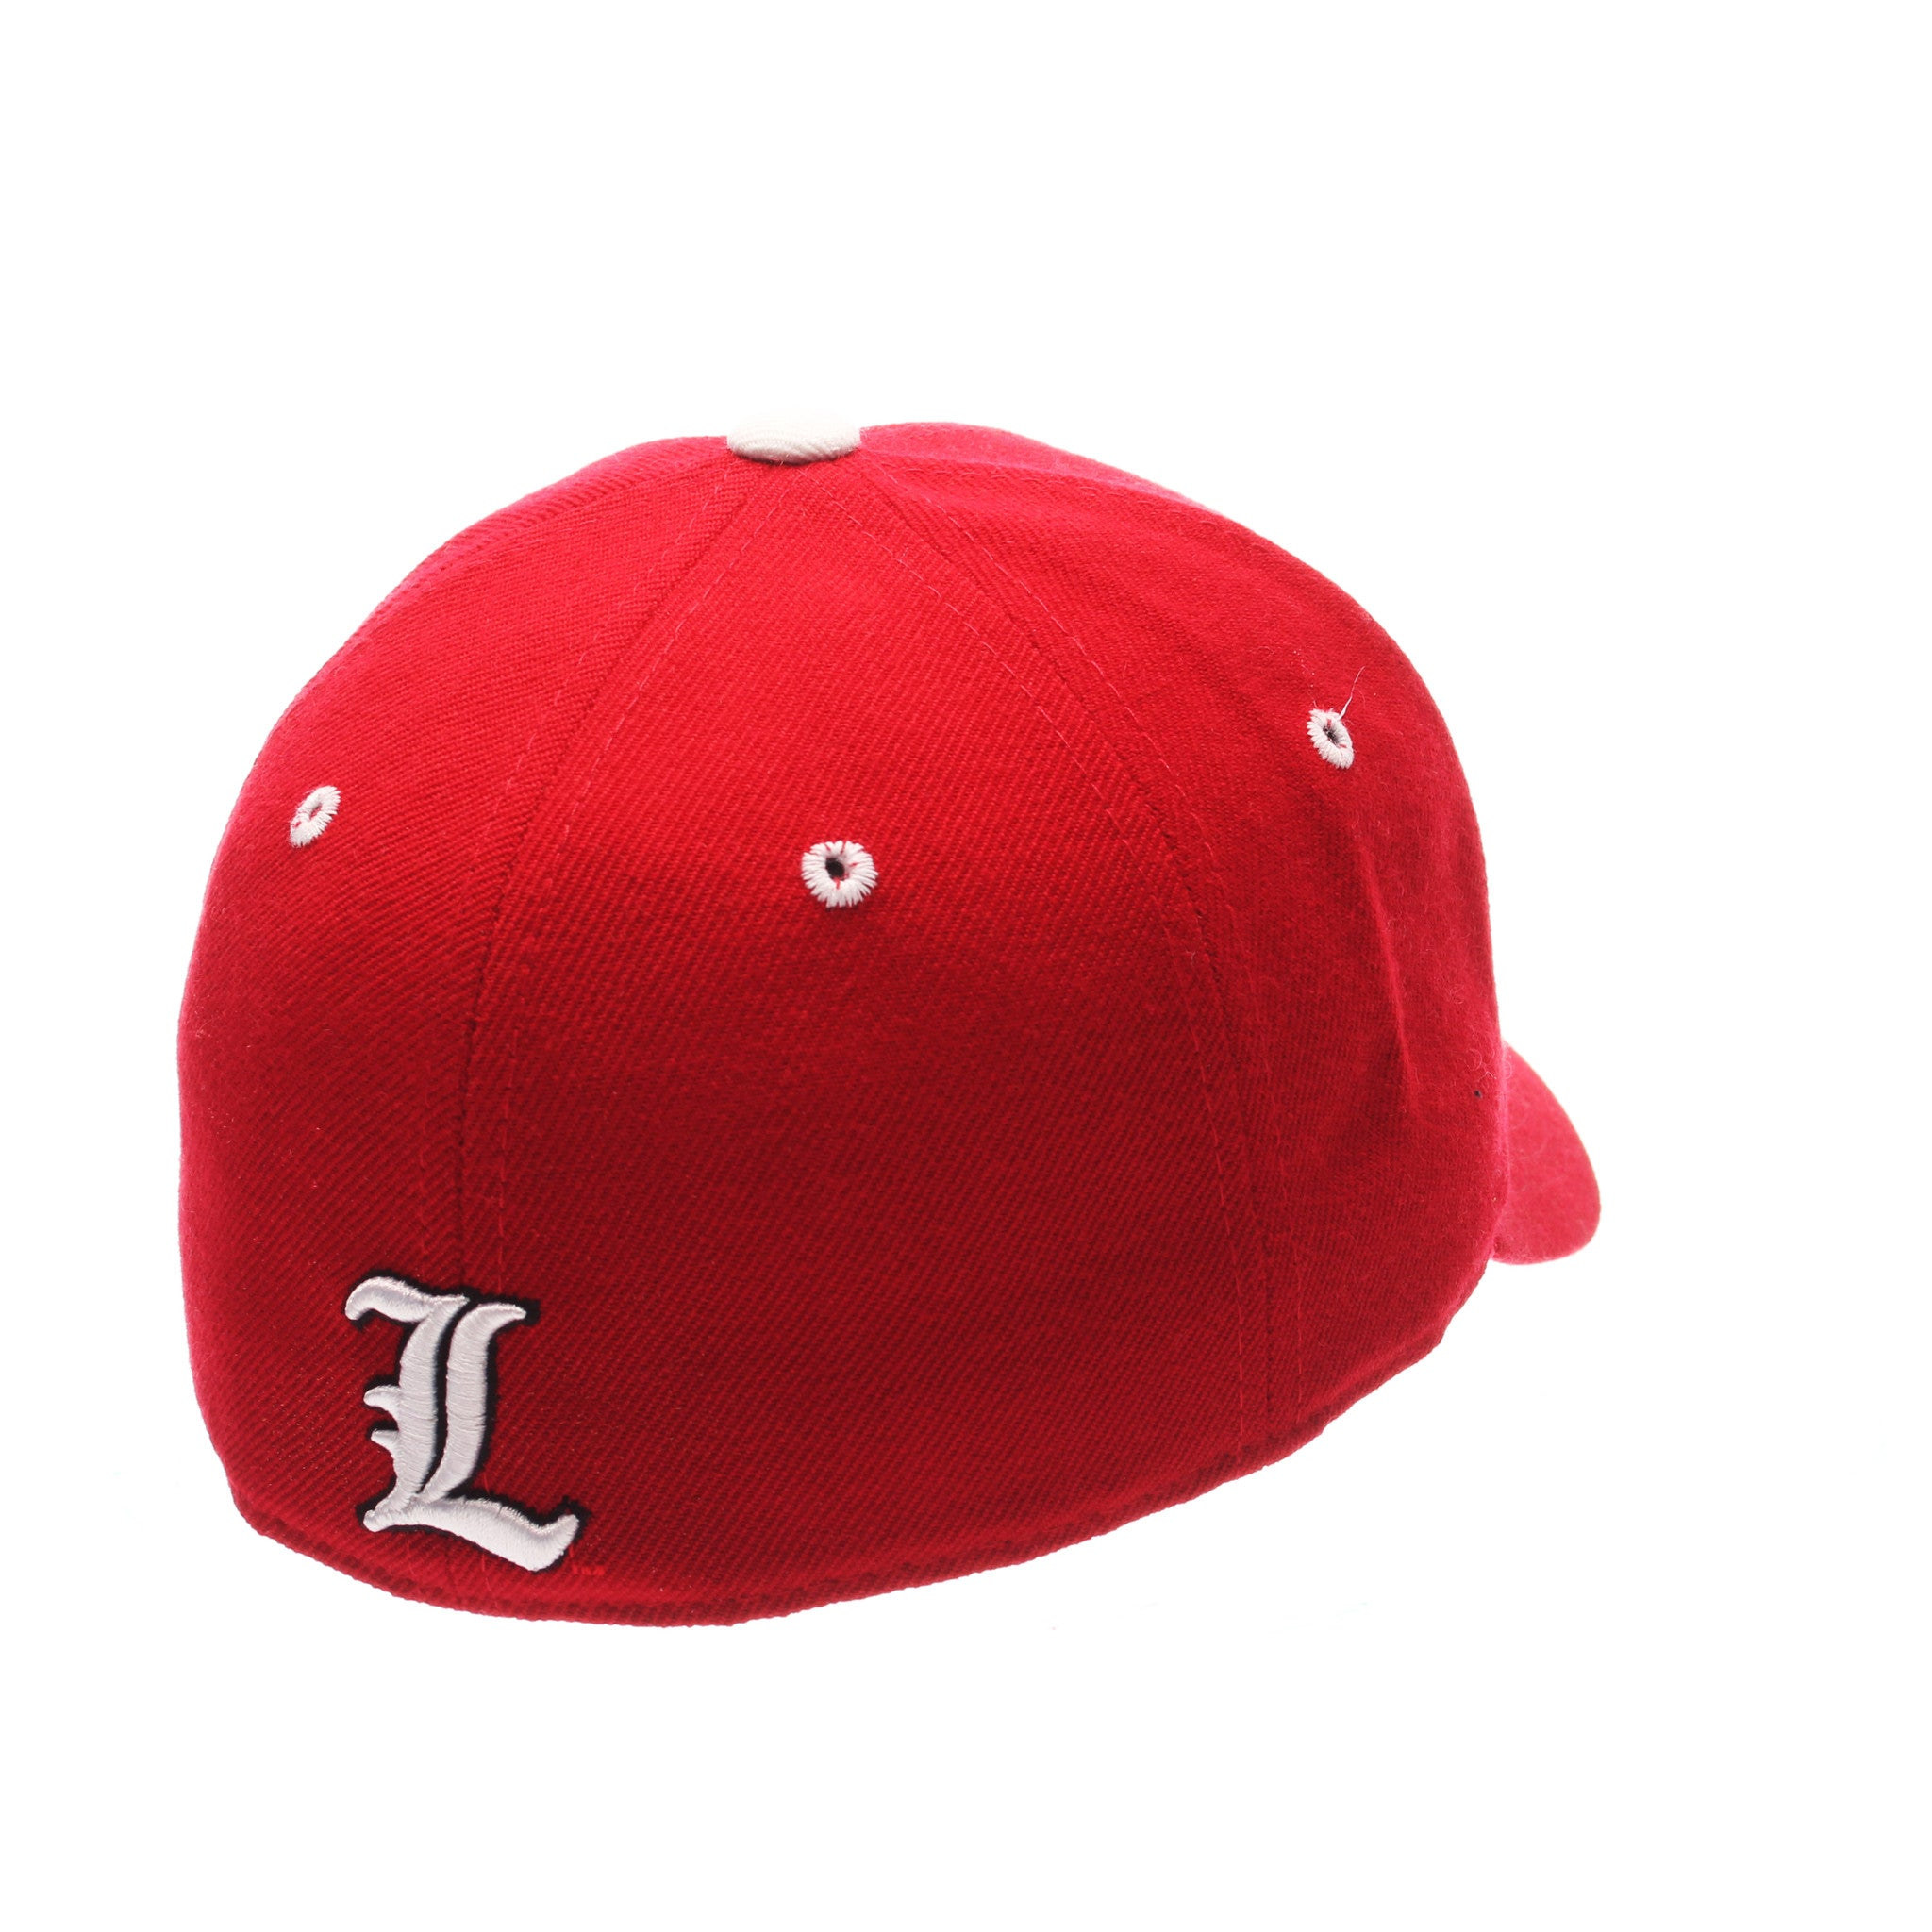 Louisville DHS Standard (Low) (CARDINAL) Red Zwool Fitted hats by Zephyr